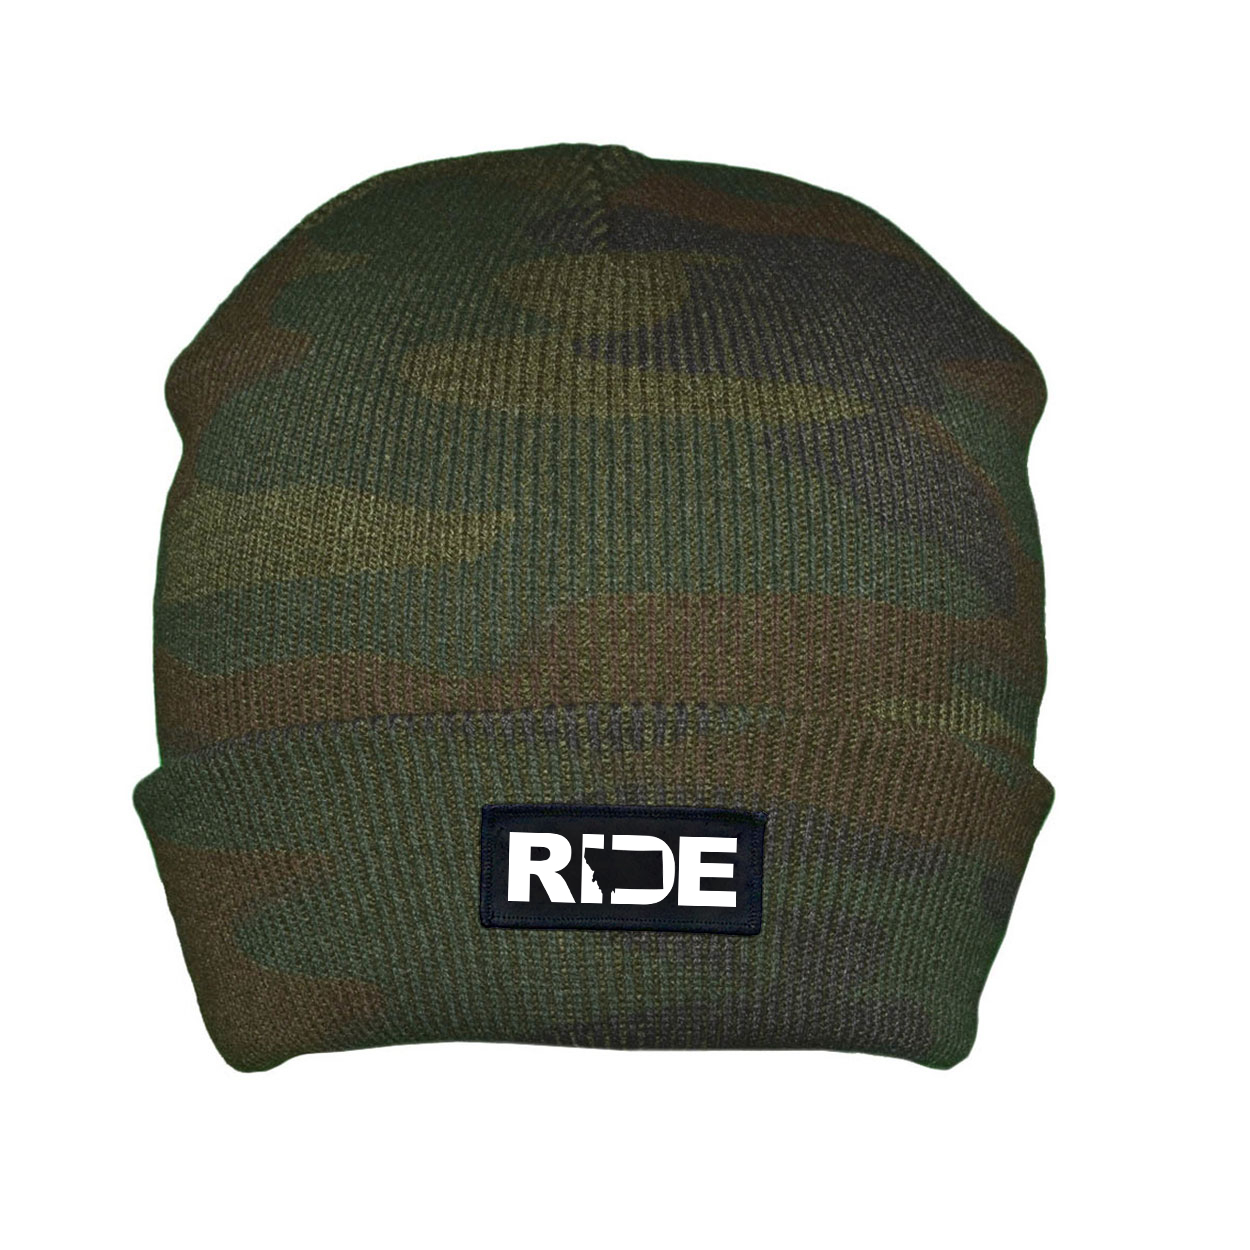 Ride Montana Night Out Woven Patch Roll Up Skully Beanie Camo (White Logo)